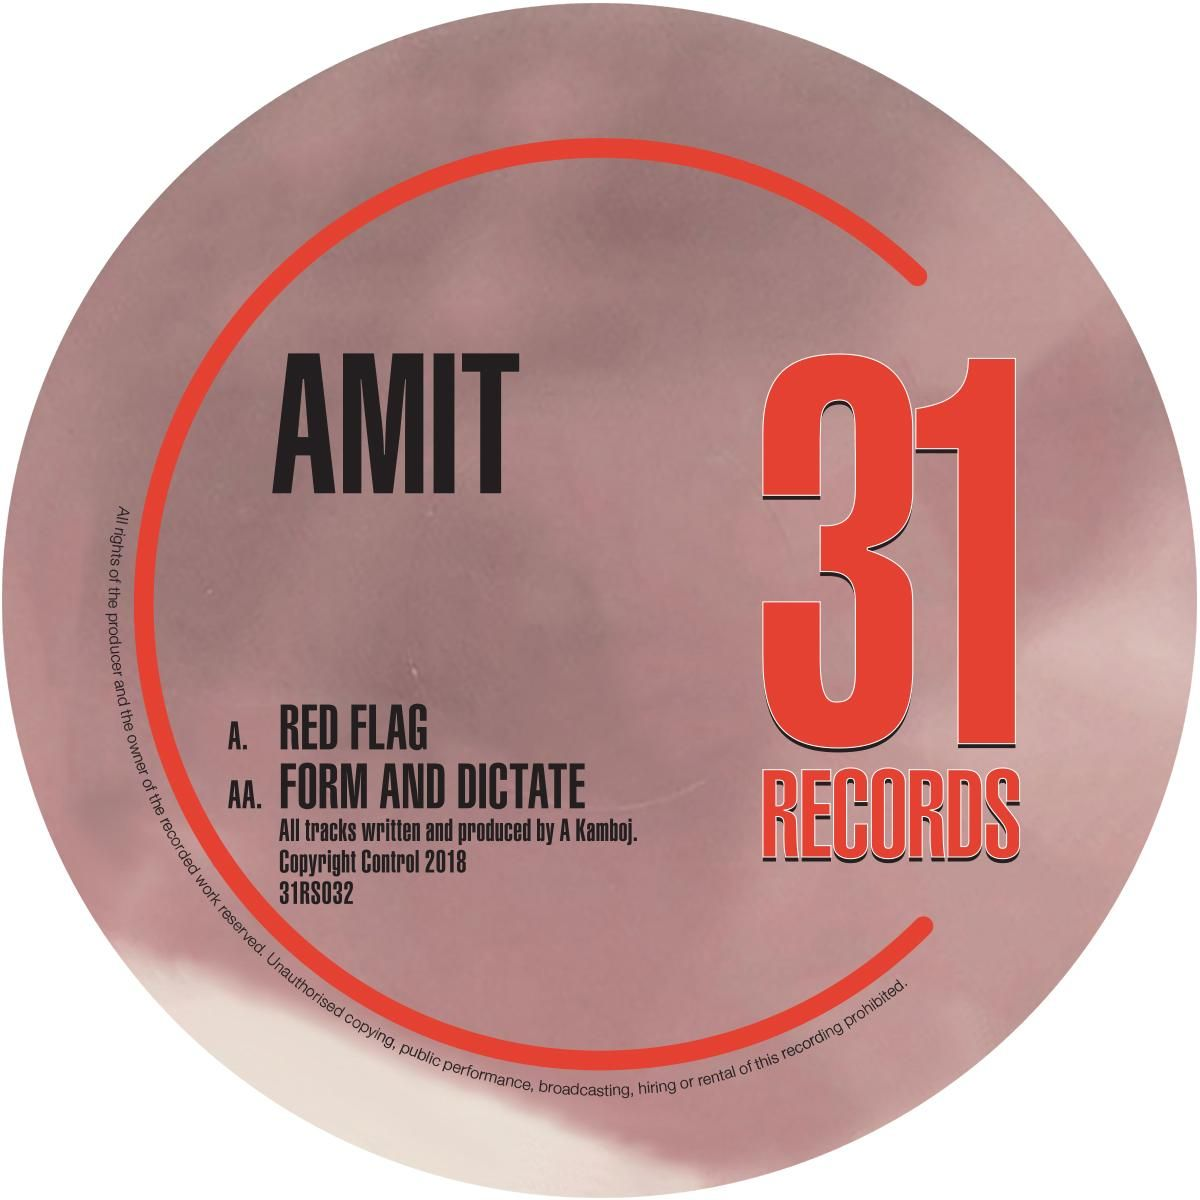 Amit - Red Flag [Transaparent Vinyl]